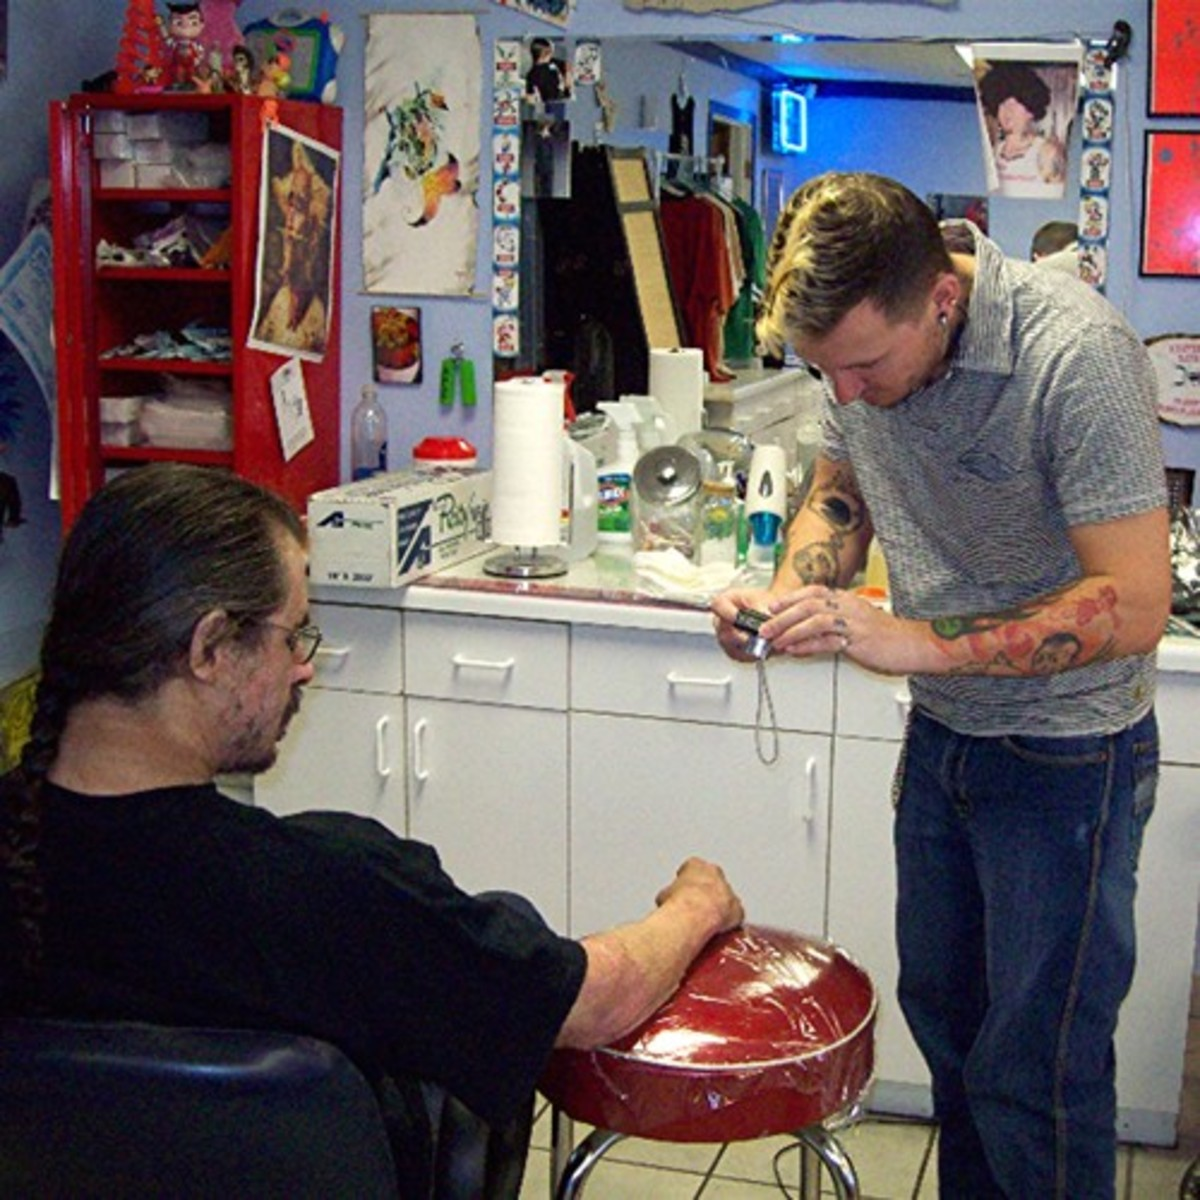 Dang snaps a photo before starting Scott's tattoo.